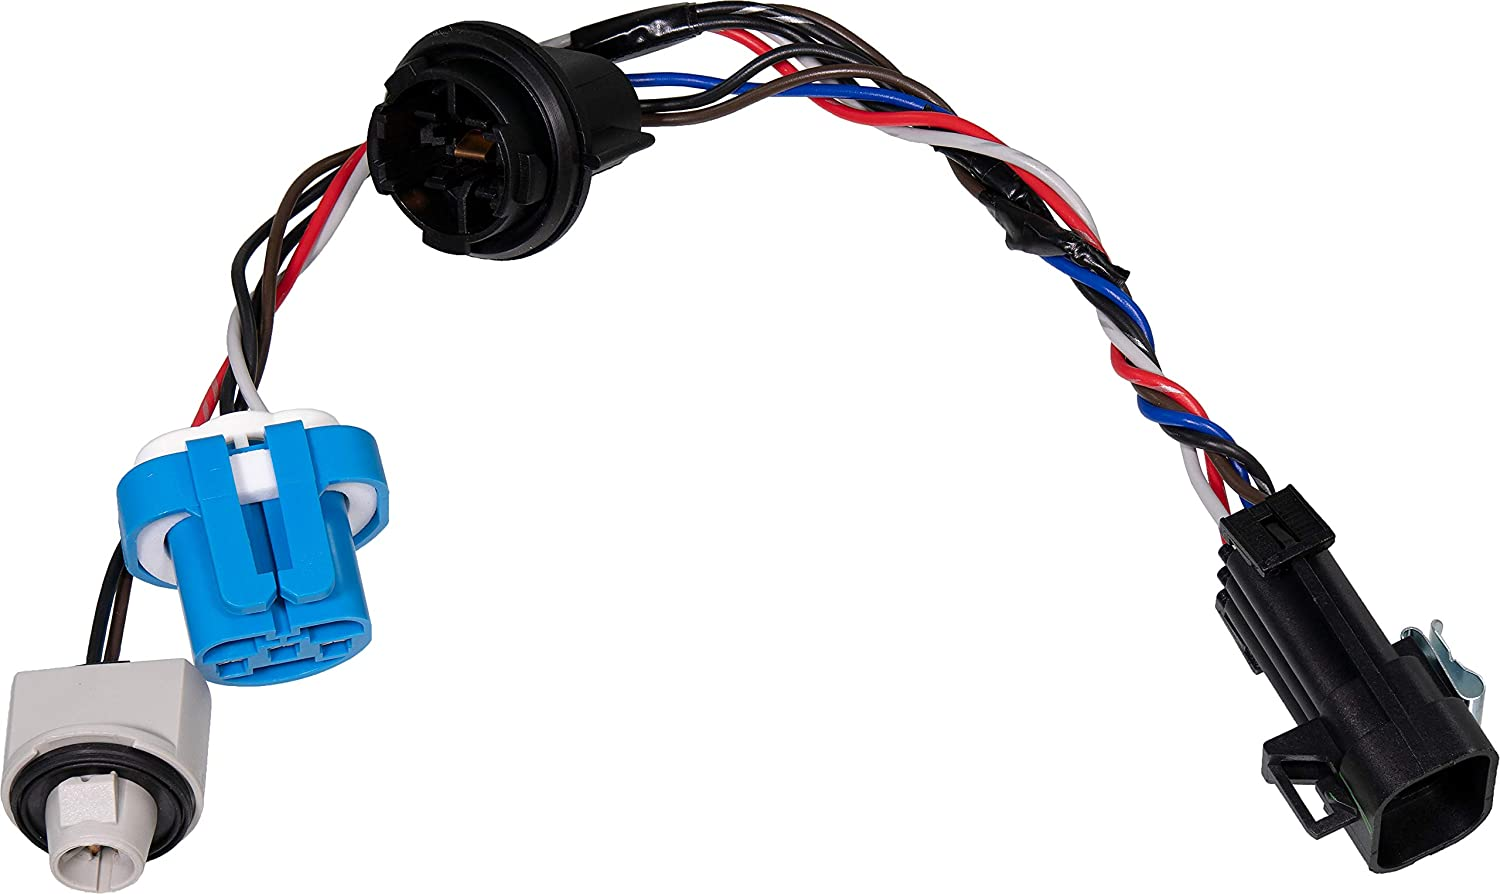 amazon.com: apdty 138446 headlight wiring harness pigtail & bulb connector  sockets fits front left or right 2005-2008 chevy cobalt & 2007-2009 pontiac  g5 (replaces 22740621, 22740620): automotive  amazon.com